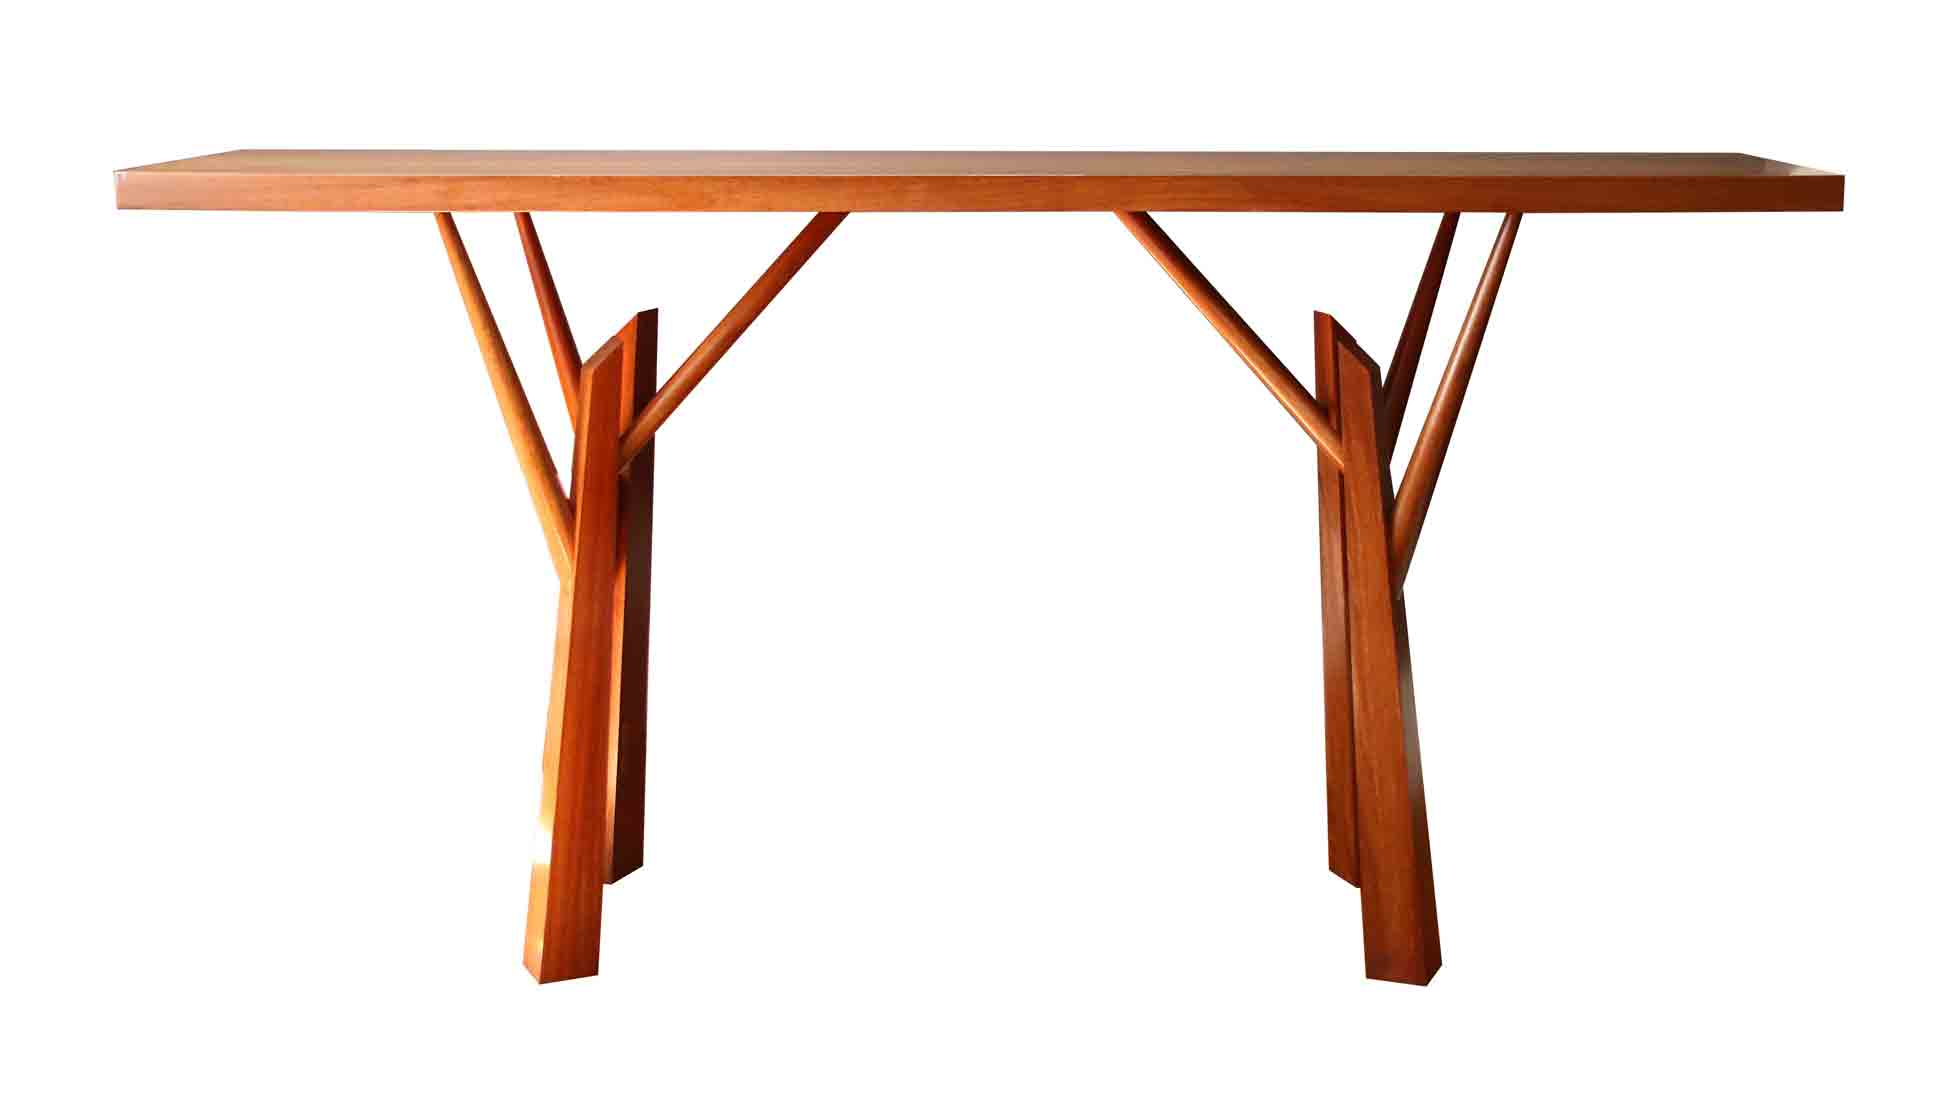 Frank Bohm Studio | Tree Table | 2020 | Eclectica Contemporary | Gallery | Cape Town |